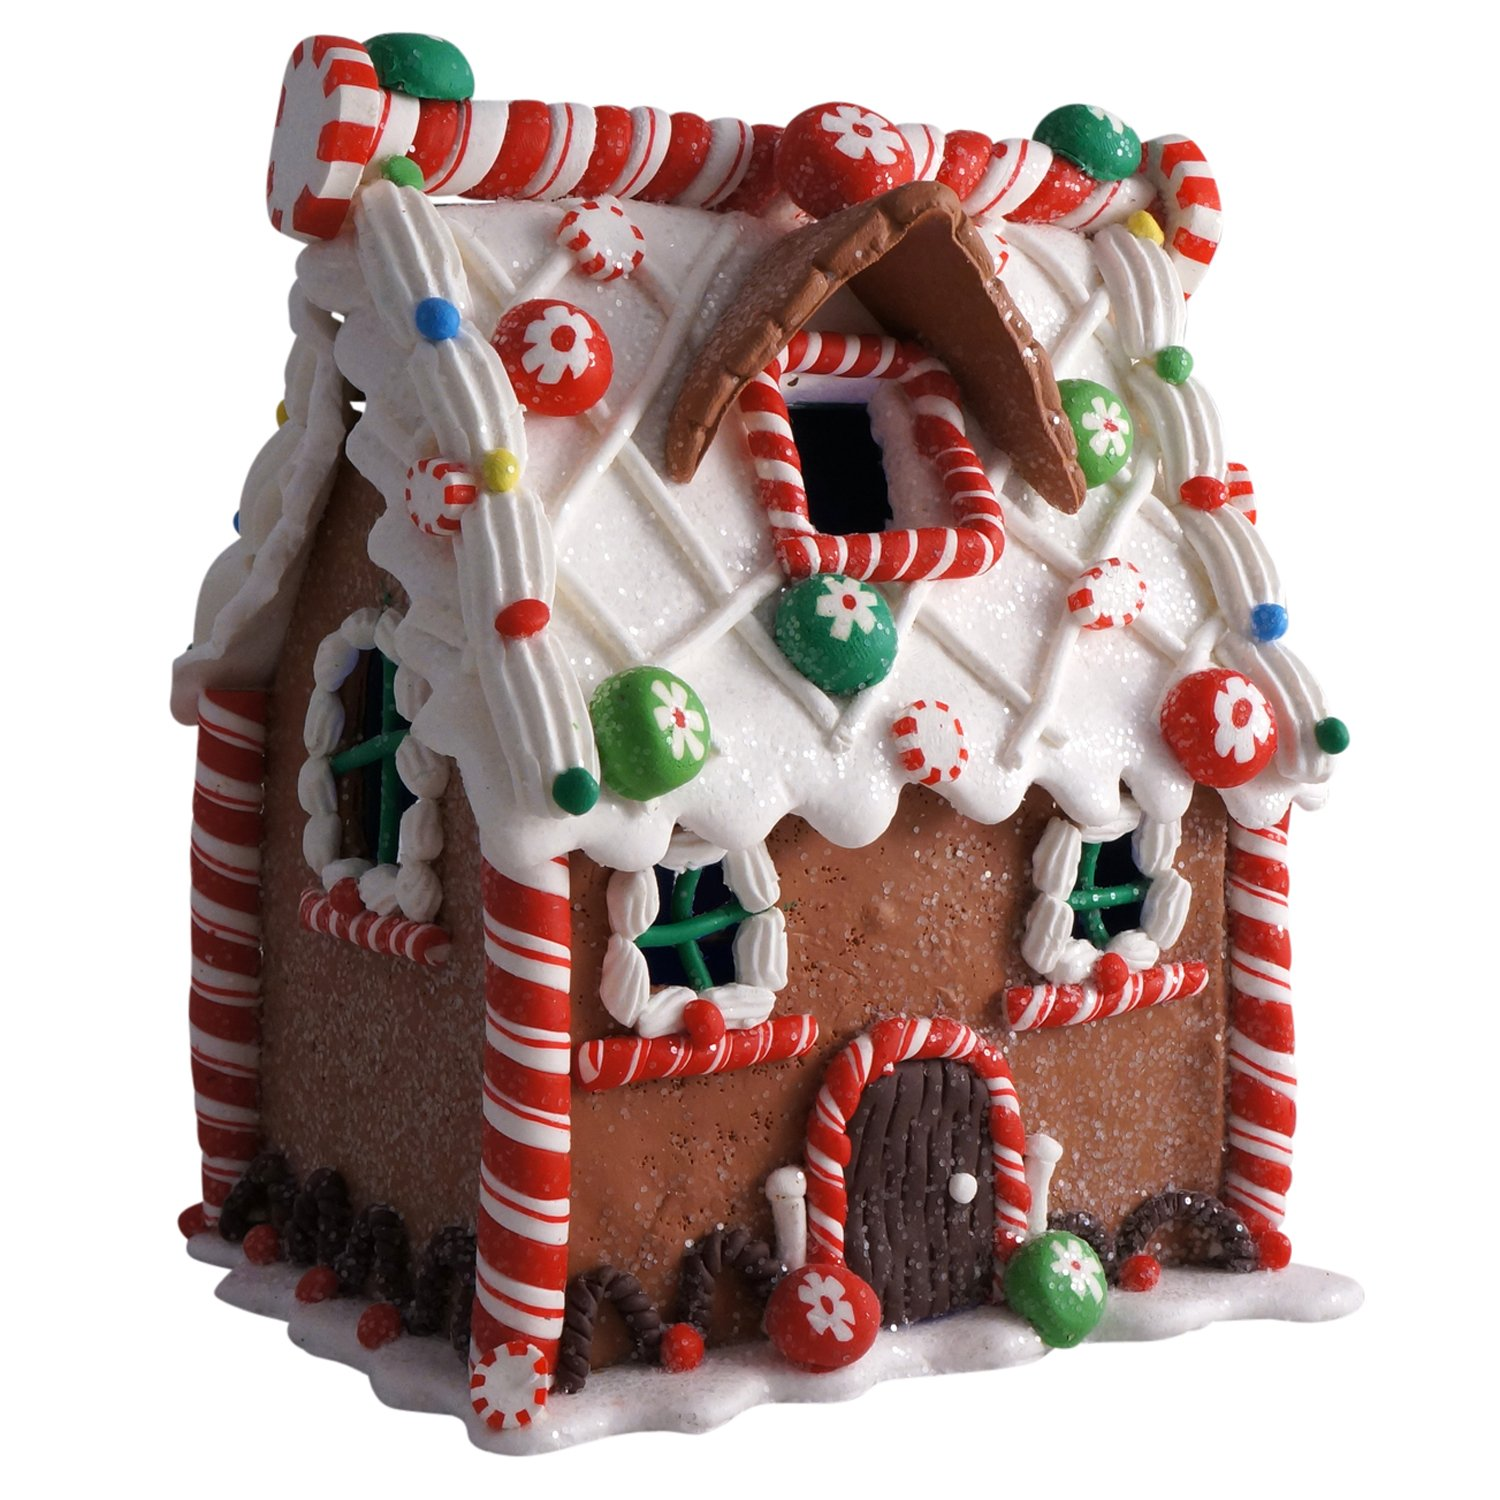 Lighted Gingerbread House Table Decorations   Christmas Wikii